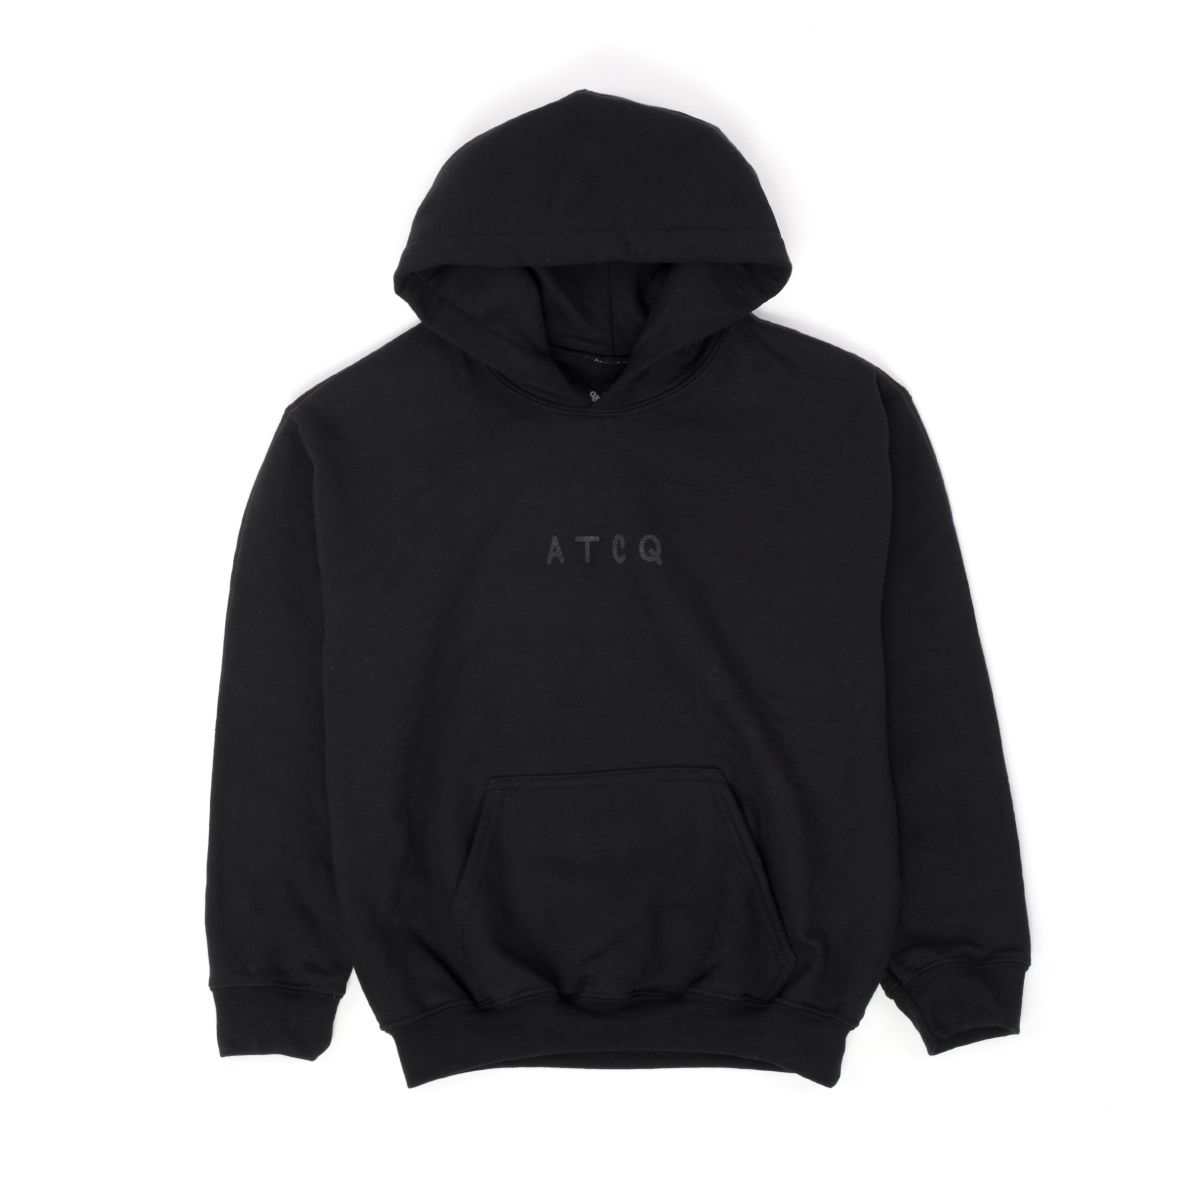 A Tribe Called Quest High Gloss Raining Figures Youth Black Hoodie